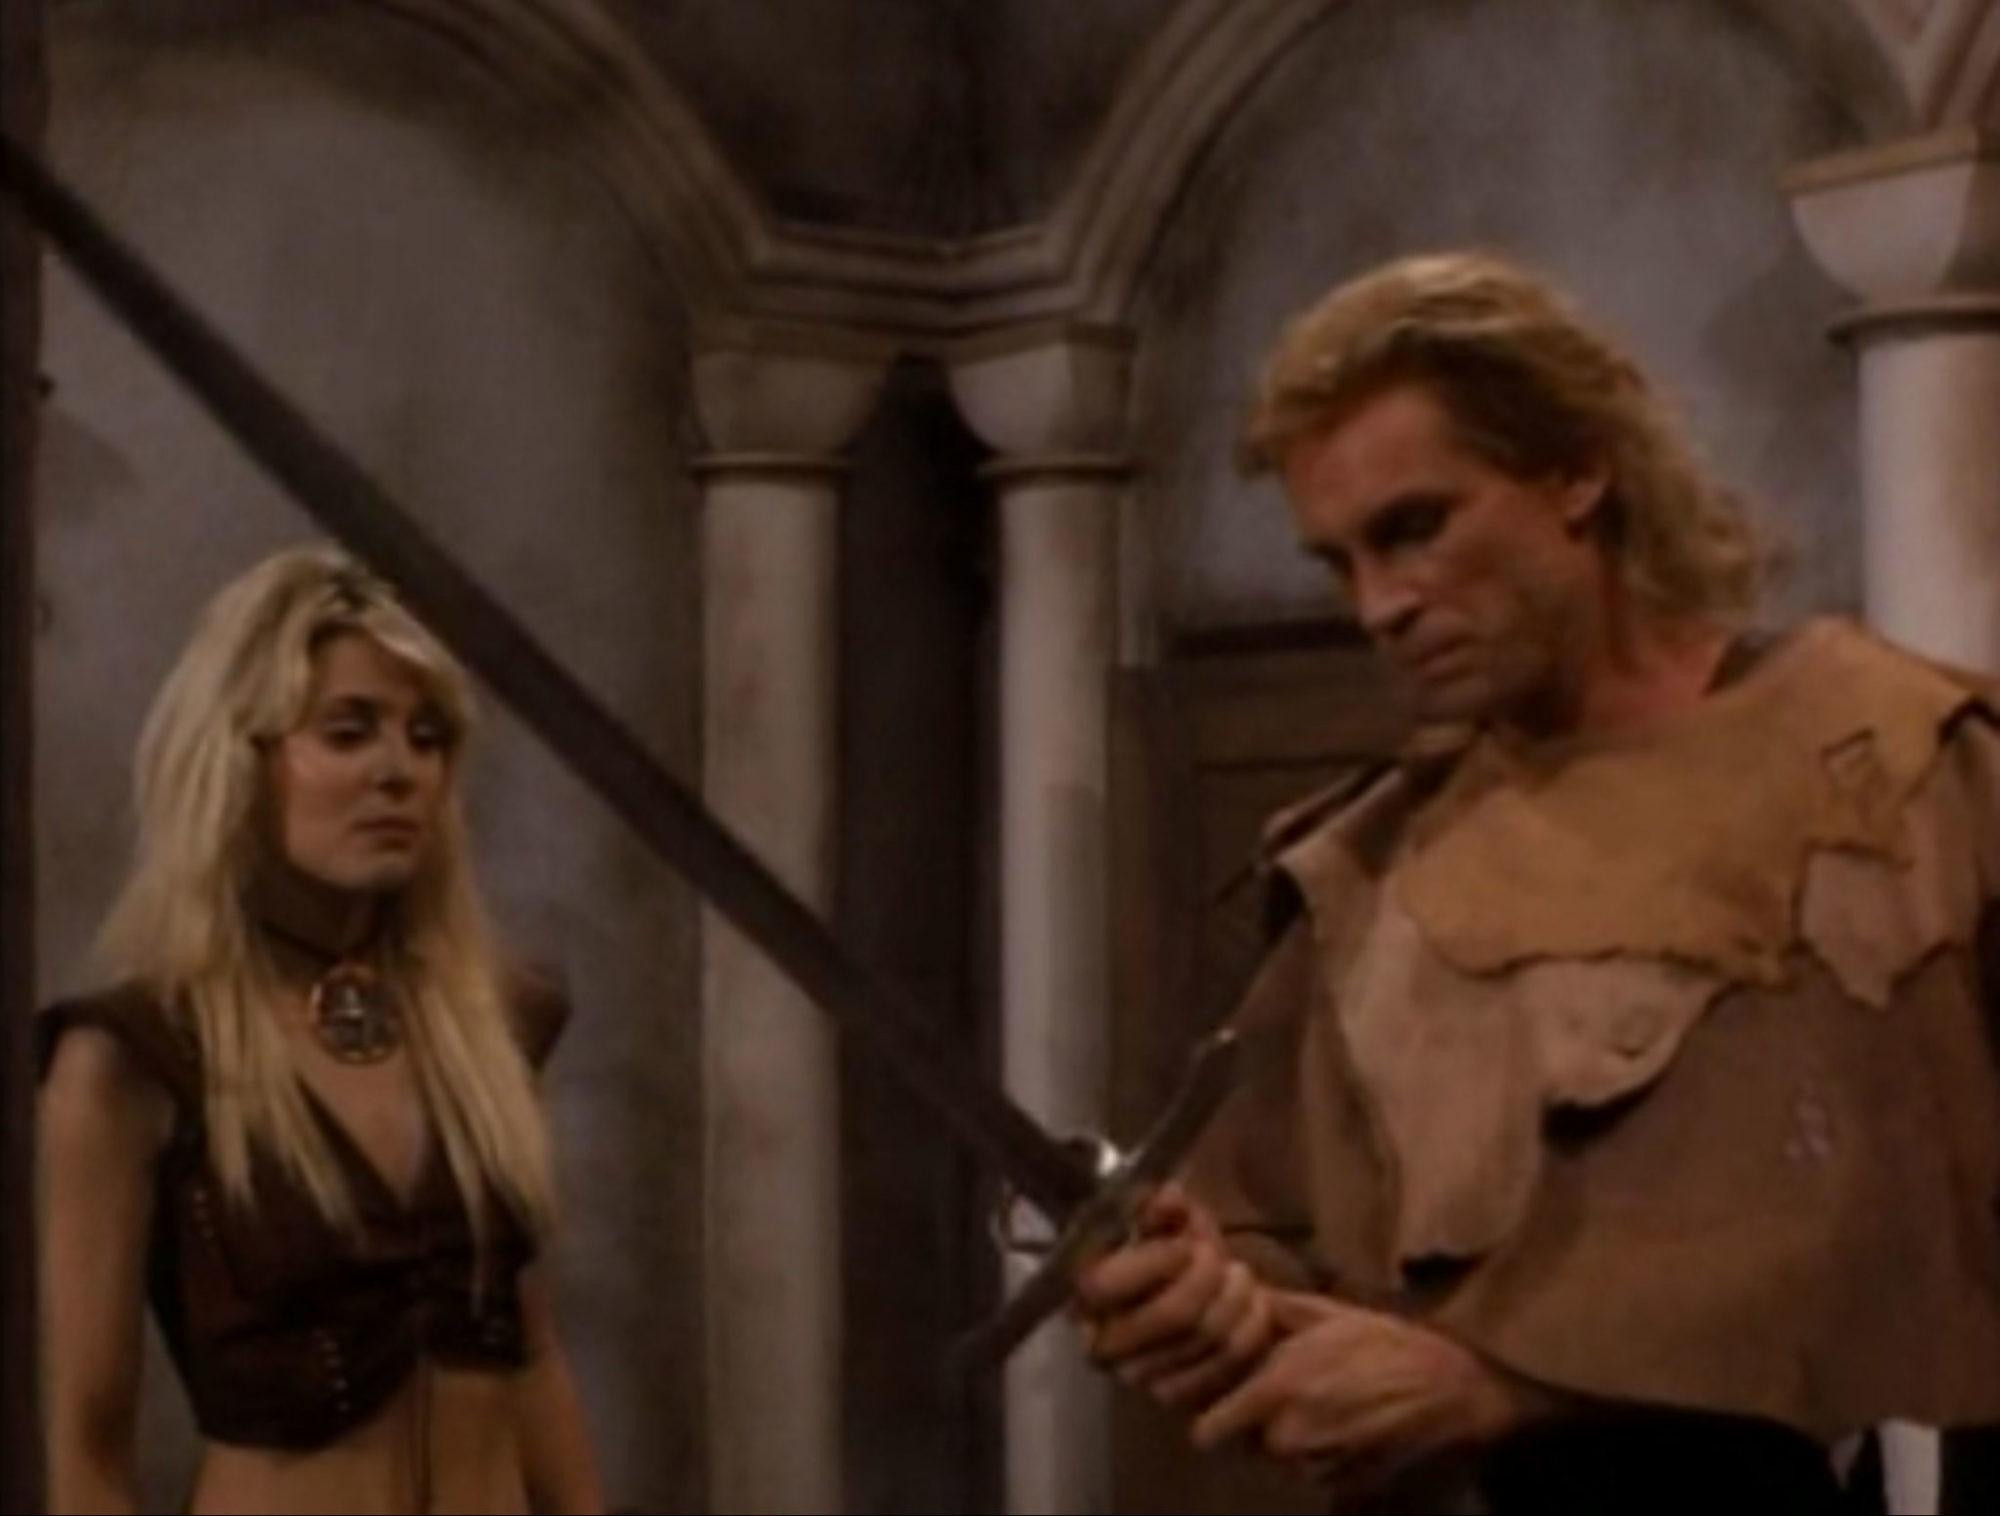 Rick Hill and Maria Ford in Deathstalker IV: Match of Titans